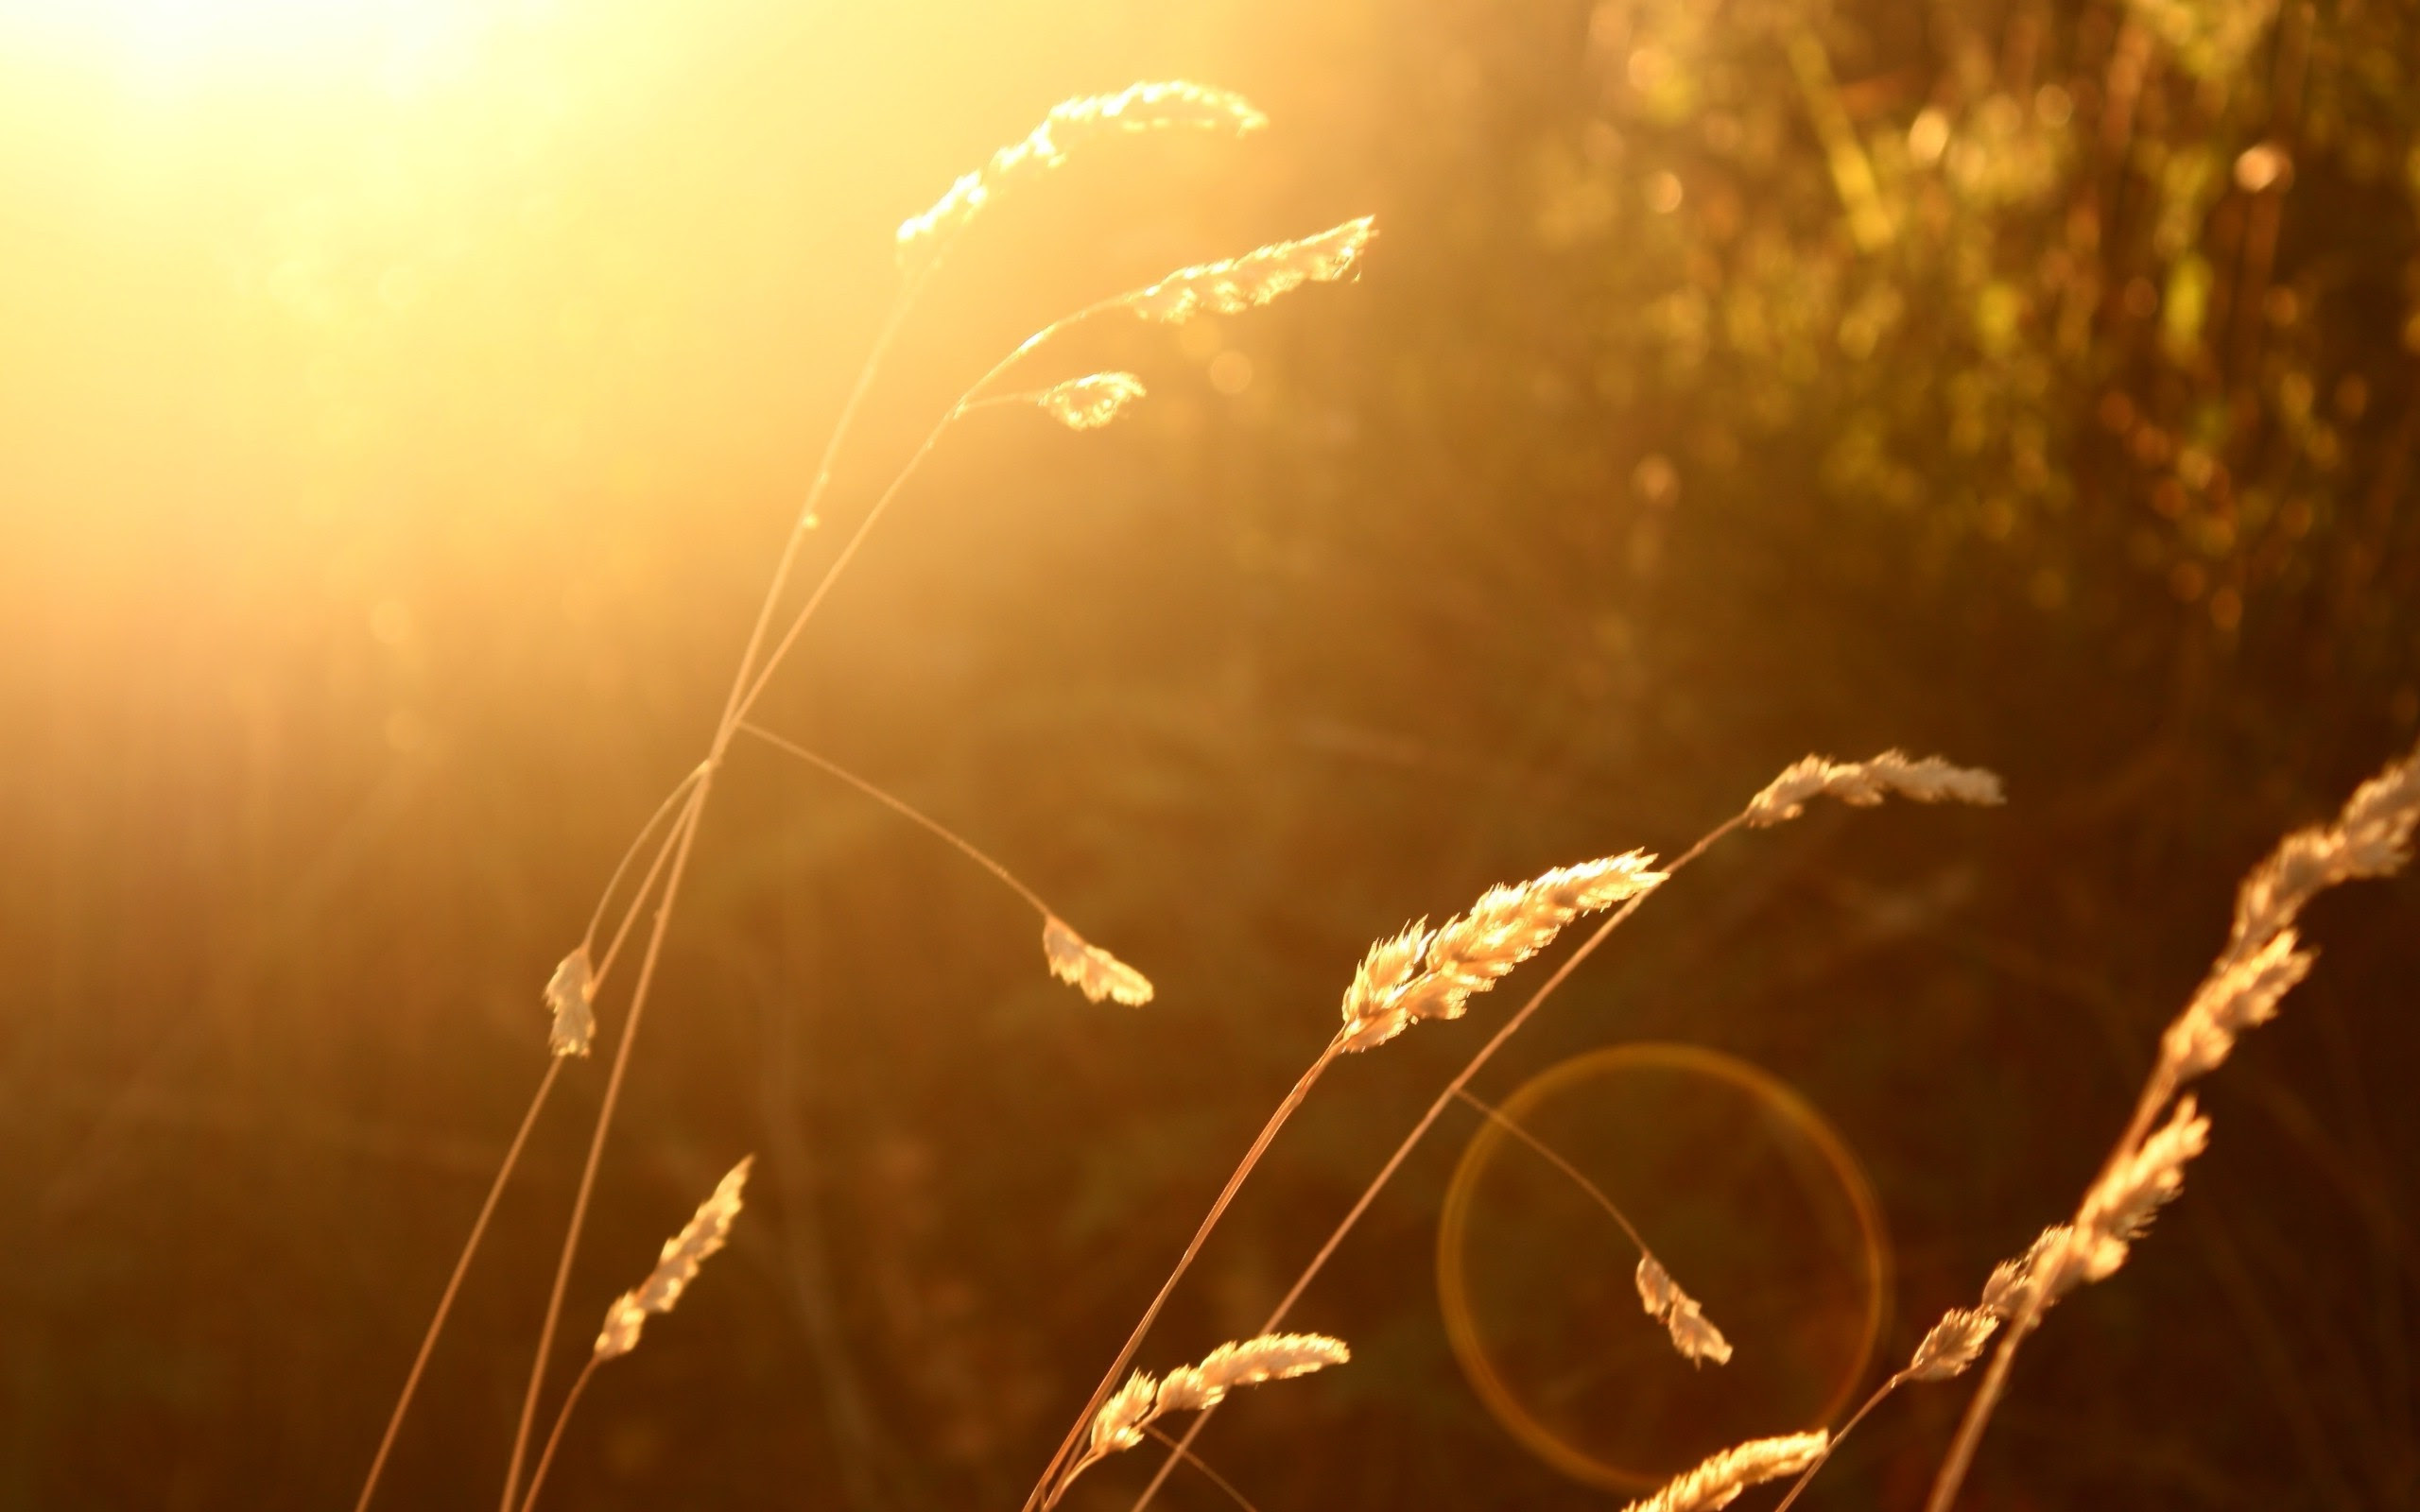 wheat, Sunlight, Blurred, Nature, Lens Flare Wallpapers HD ...